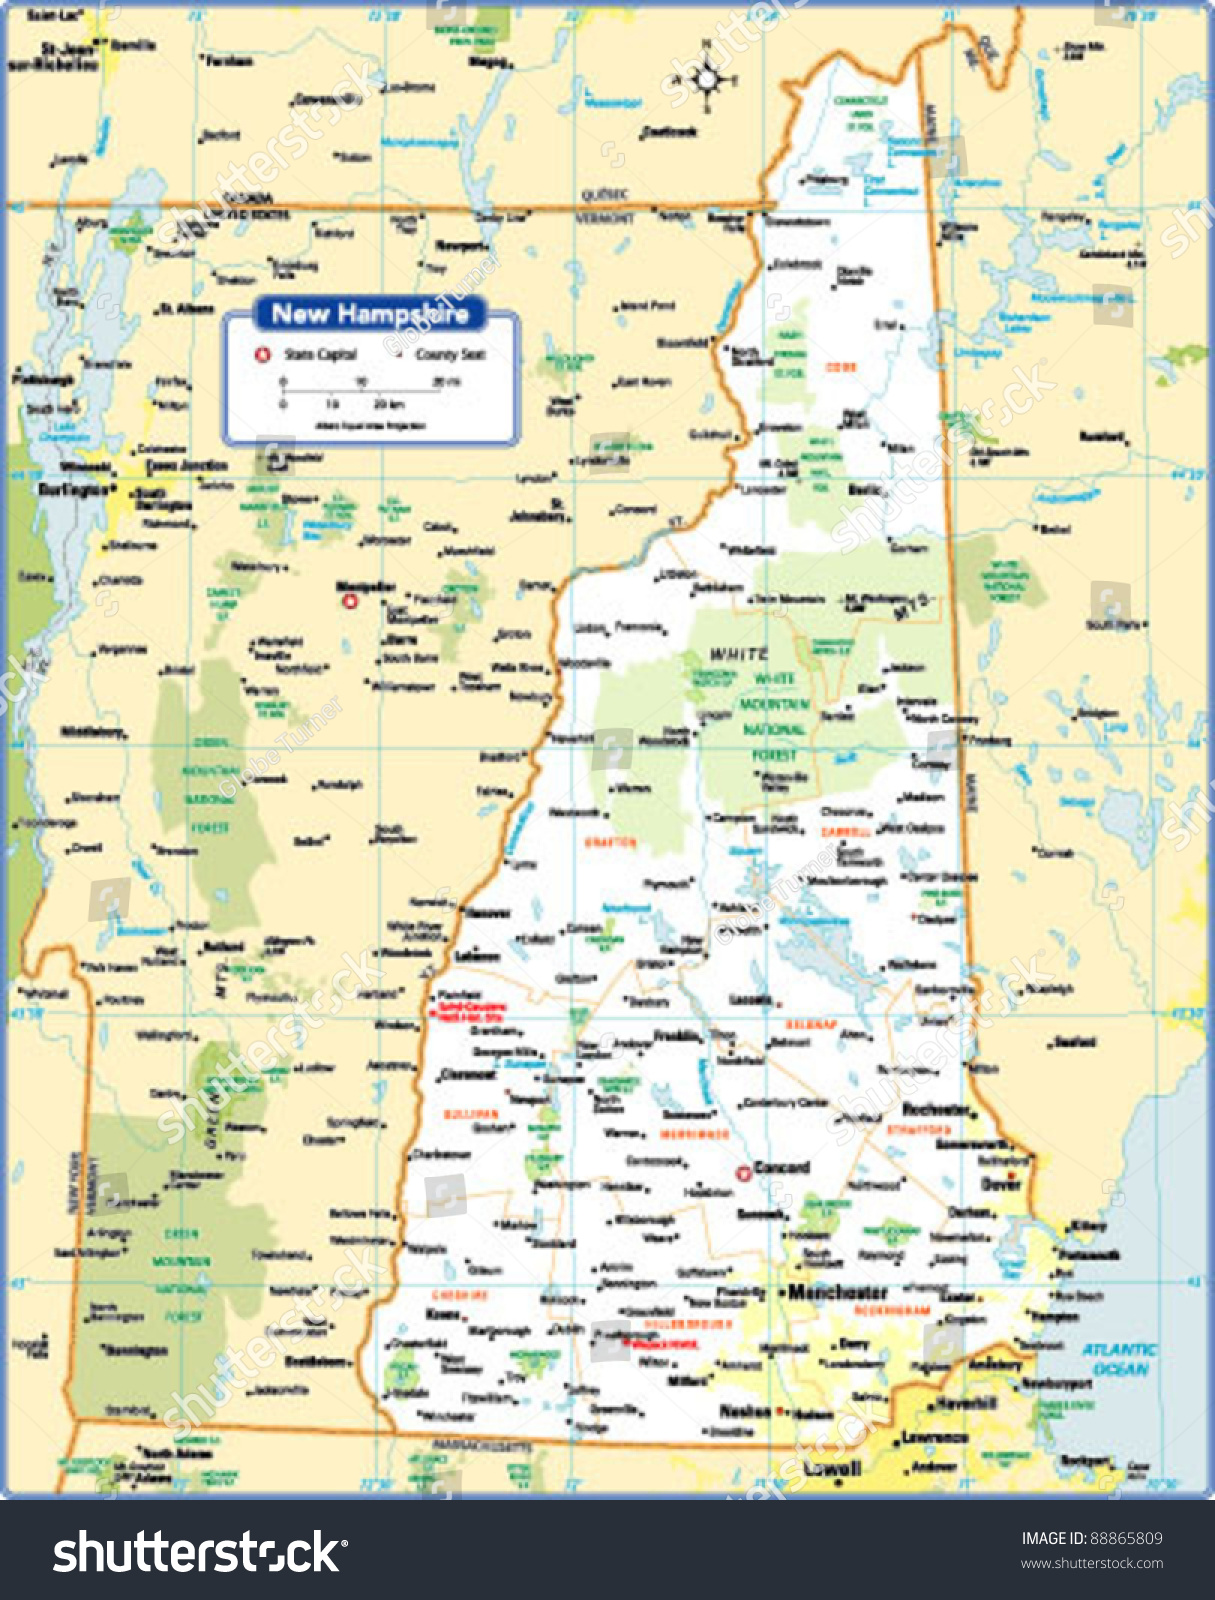 New Hampshire State Map Stock Vector Shutterstock - State of new hampshire map